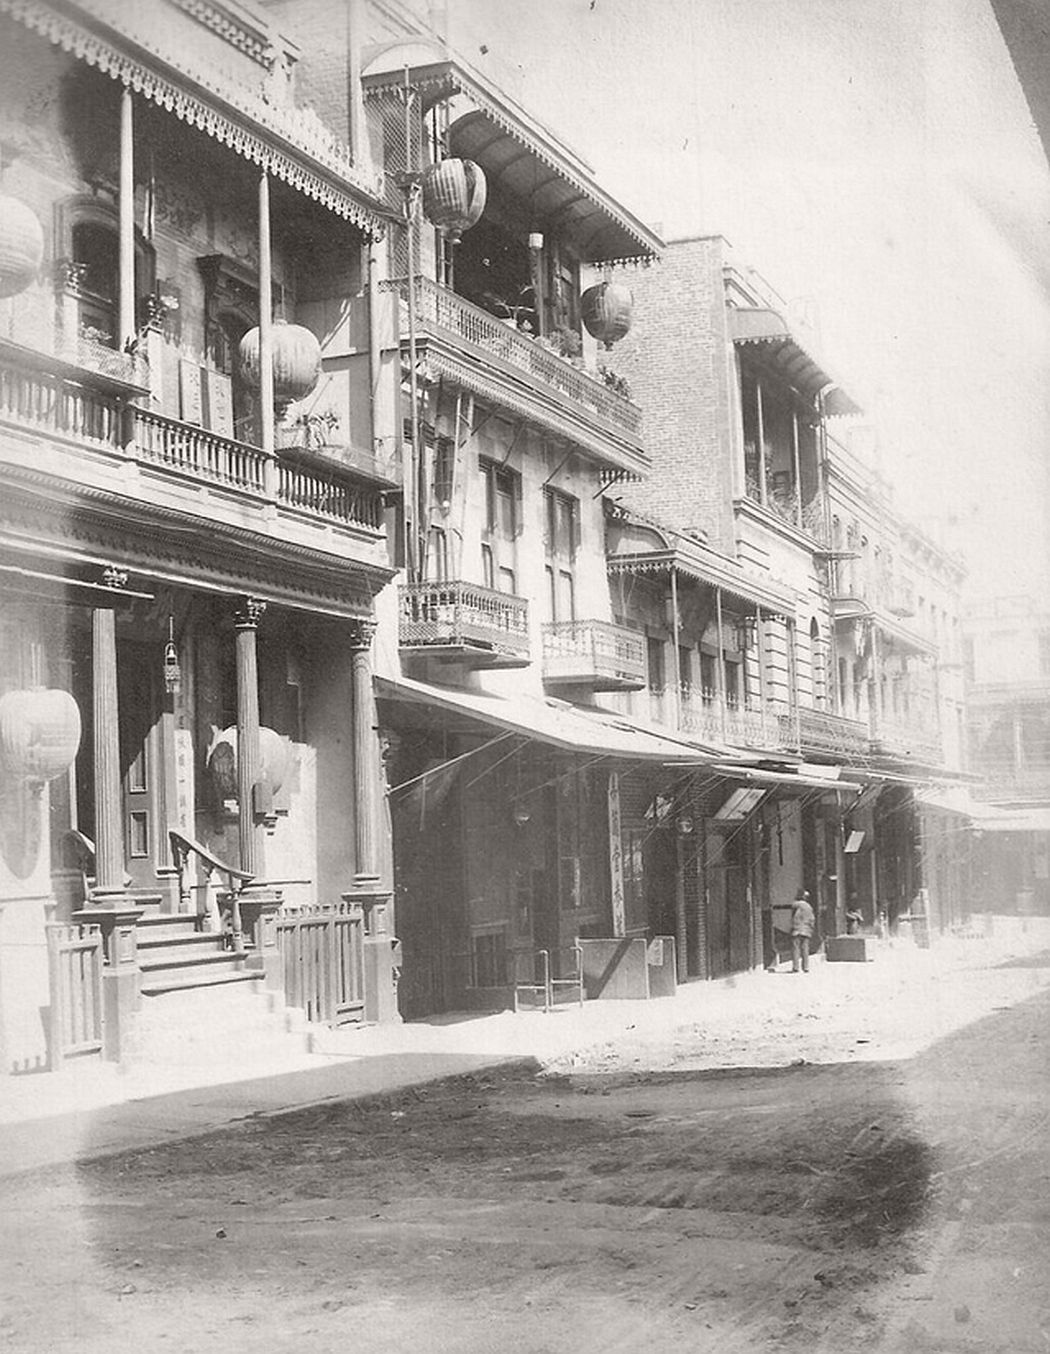 Chinatown in SF, Cal. around 1900